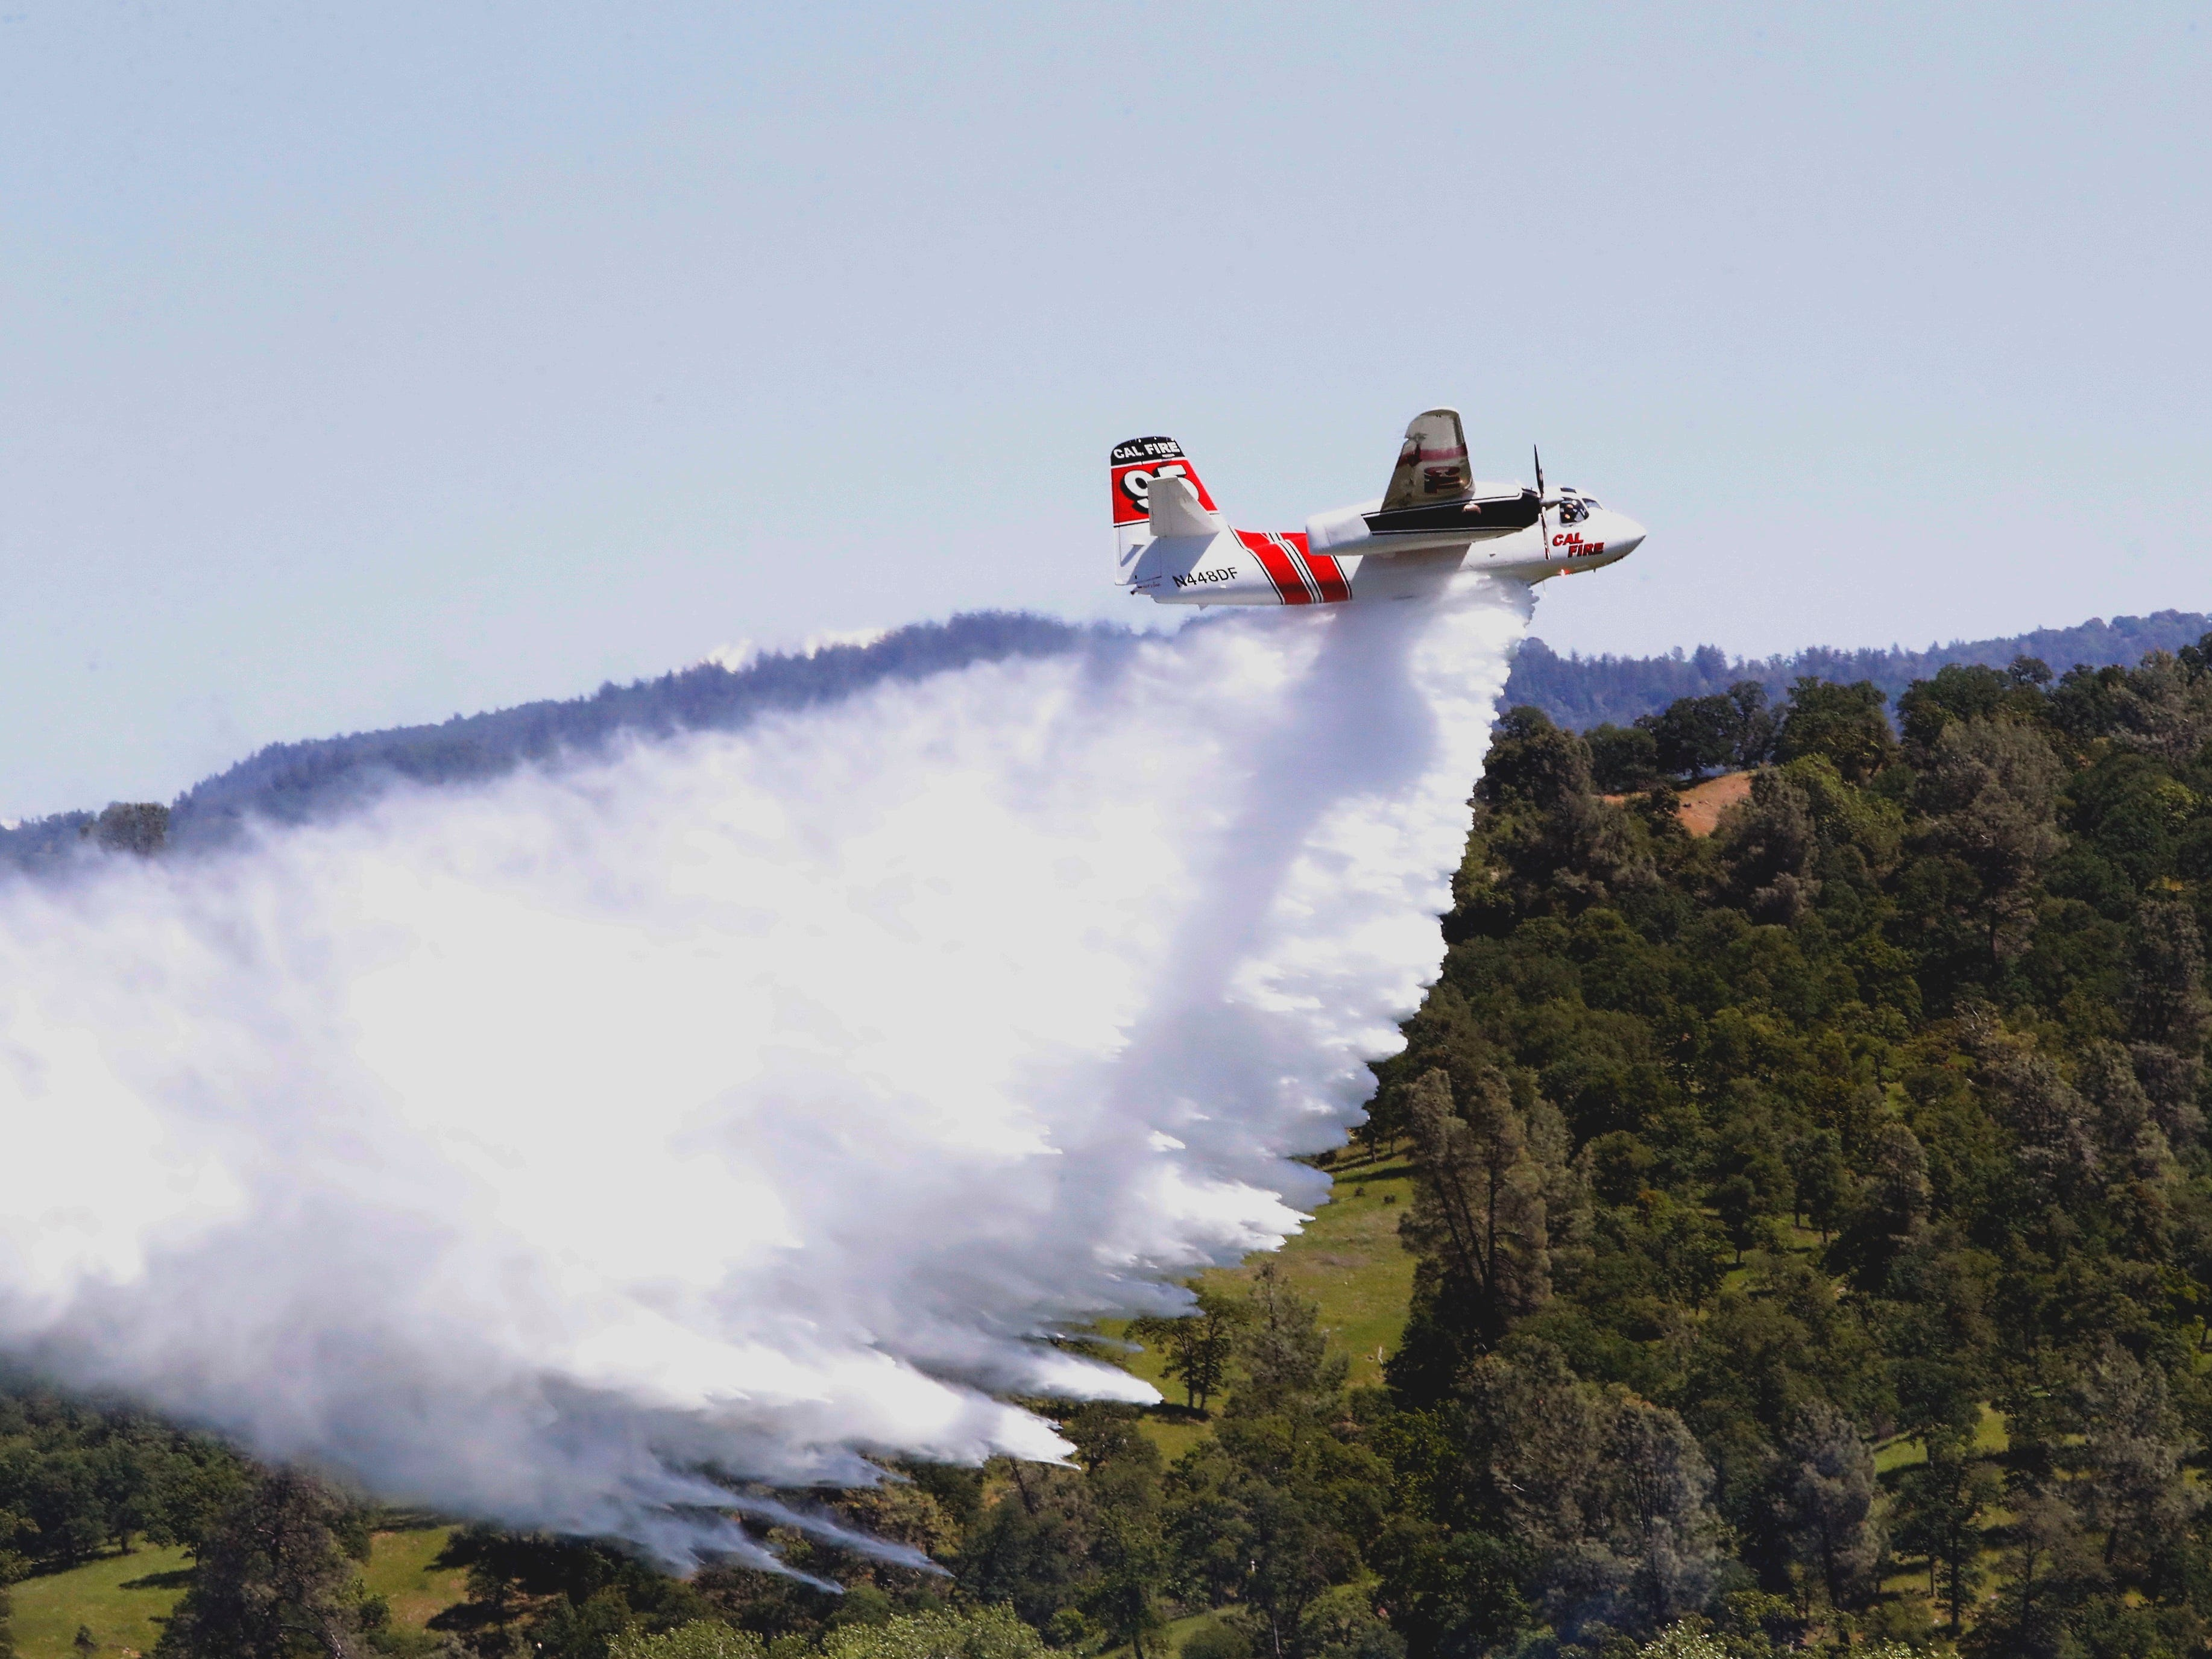 The U.S. Forest Service and Cal Fire conducted aerial firefighting training in the skies above Whitmore on May 2, 2019.